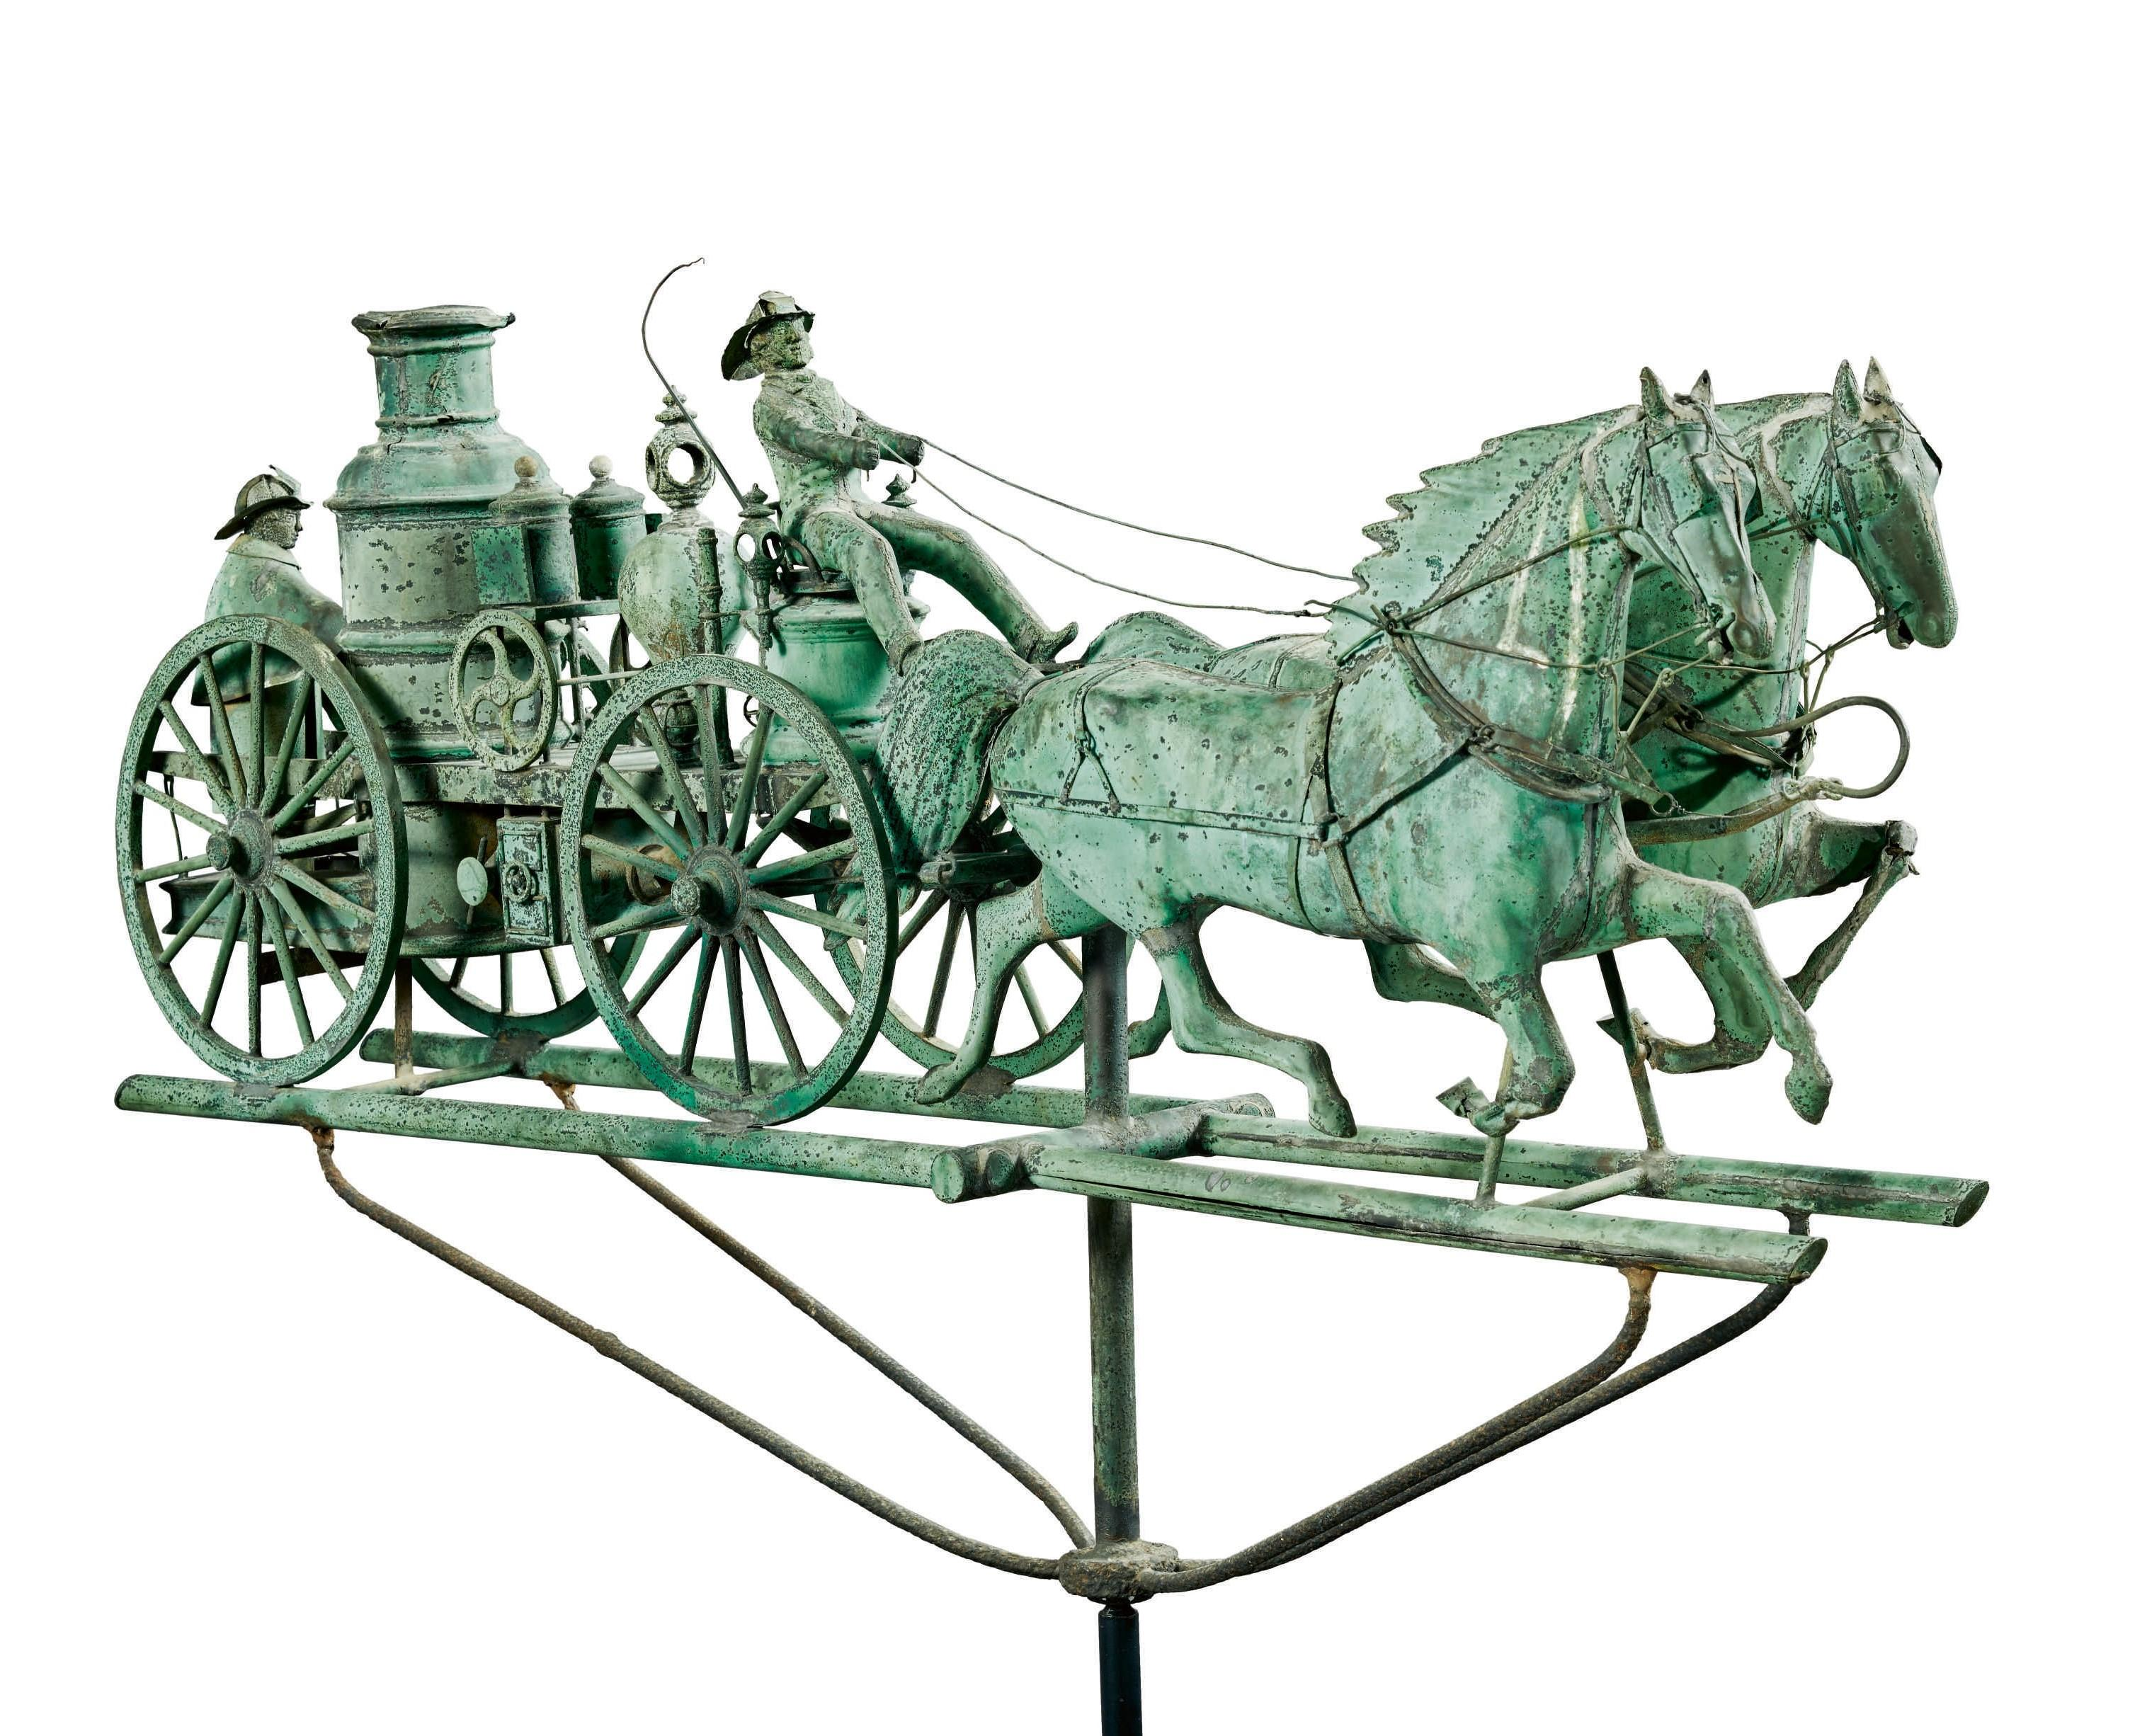 Weathervane depicting a Fire Pumper and Double-Horse Carriage